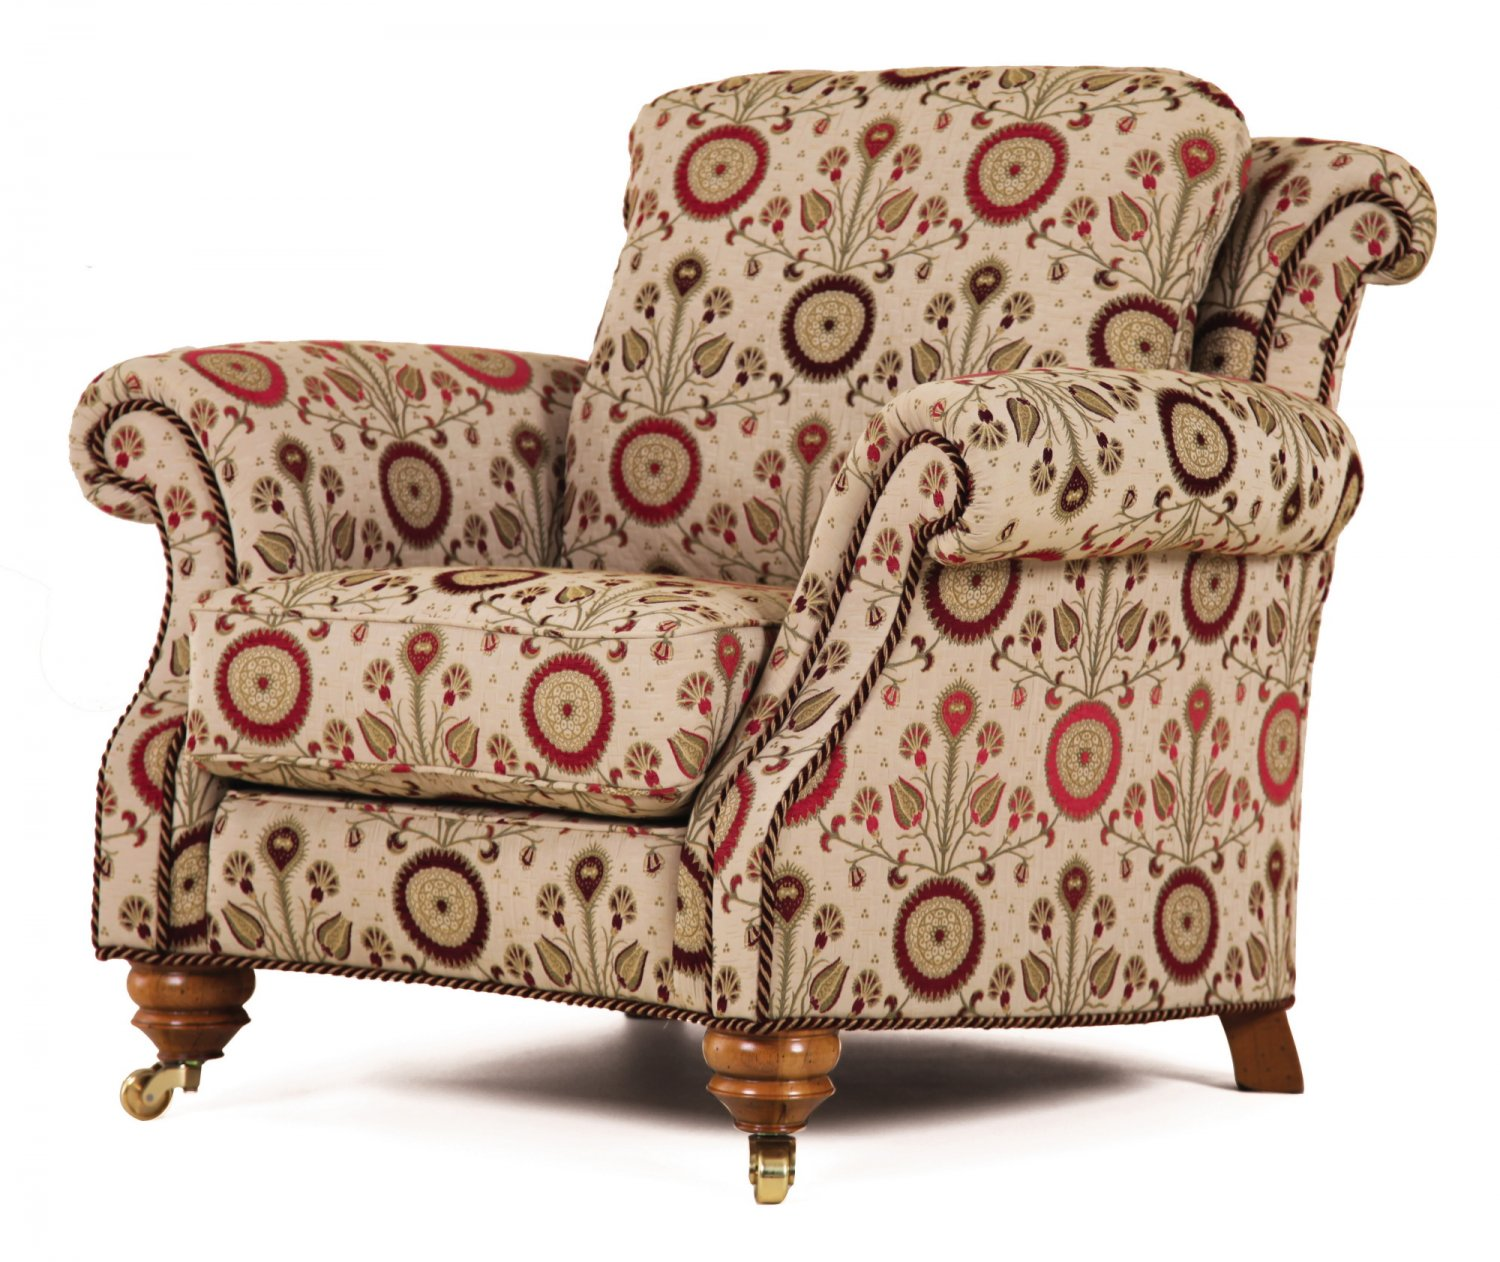 Hedley curved chair